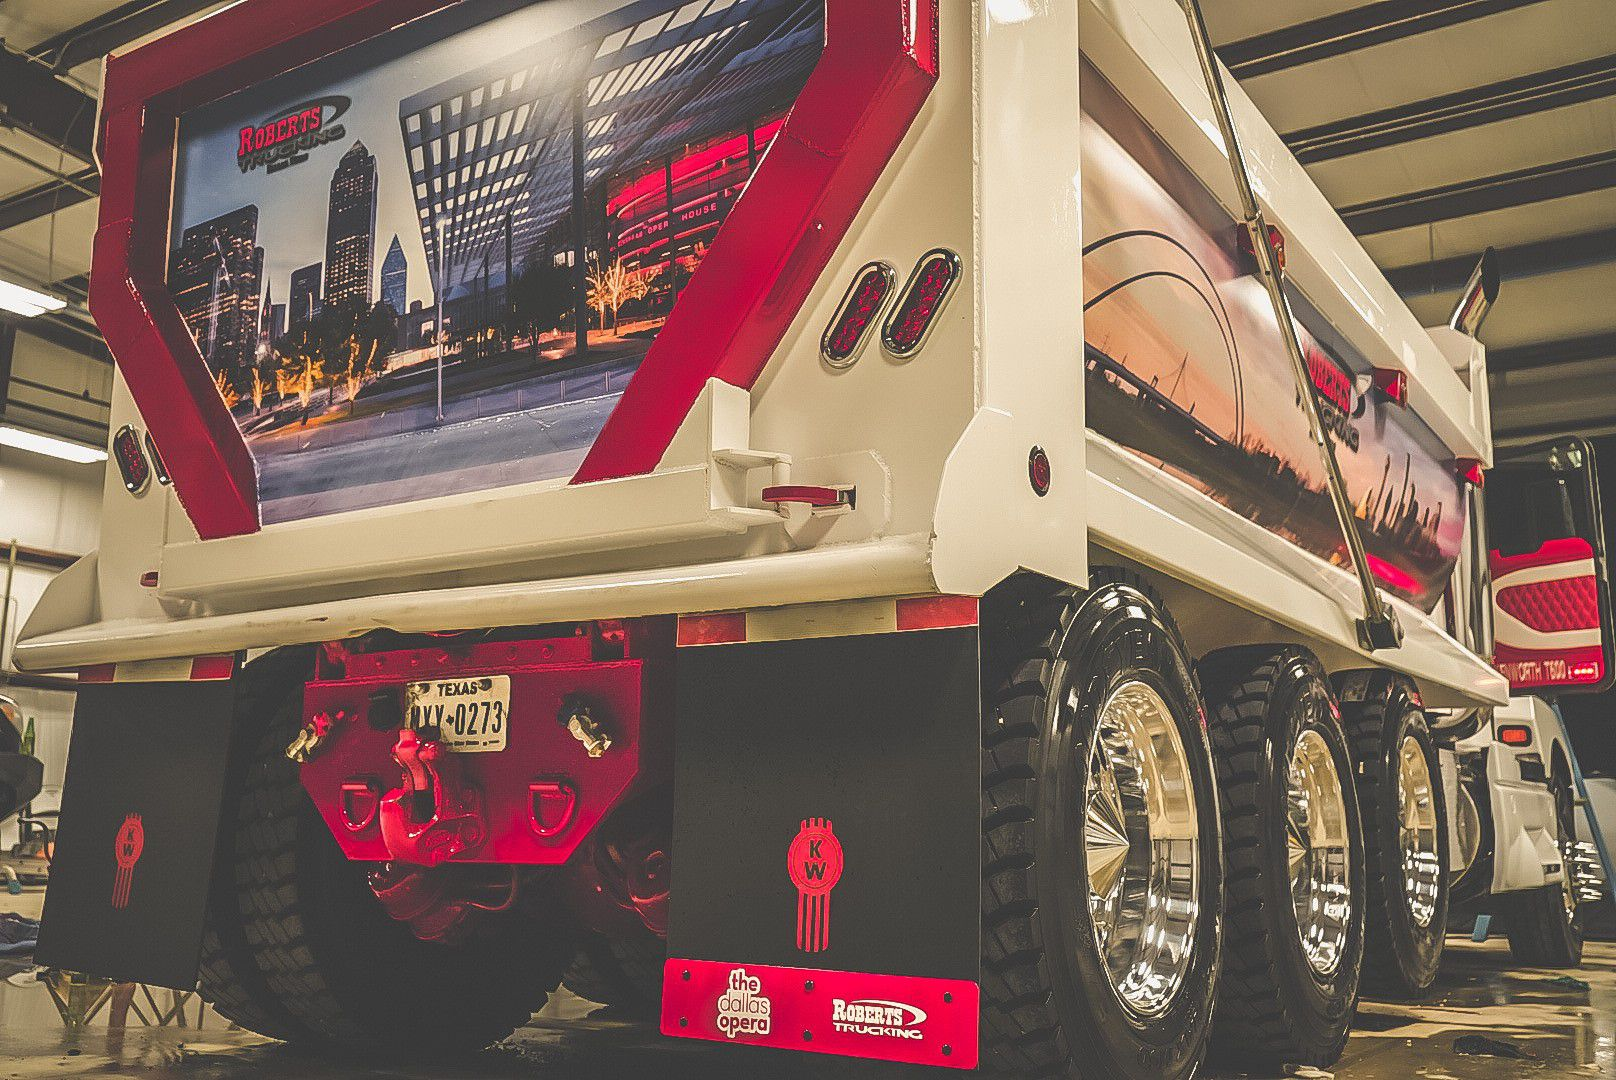 OperaTruck shows its support of the arts sporting a Dallas Opera logo on the rear flaps.